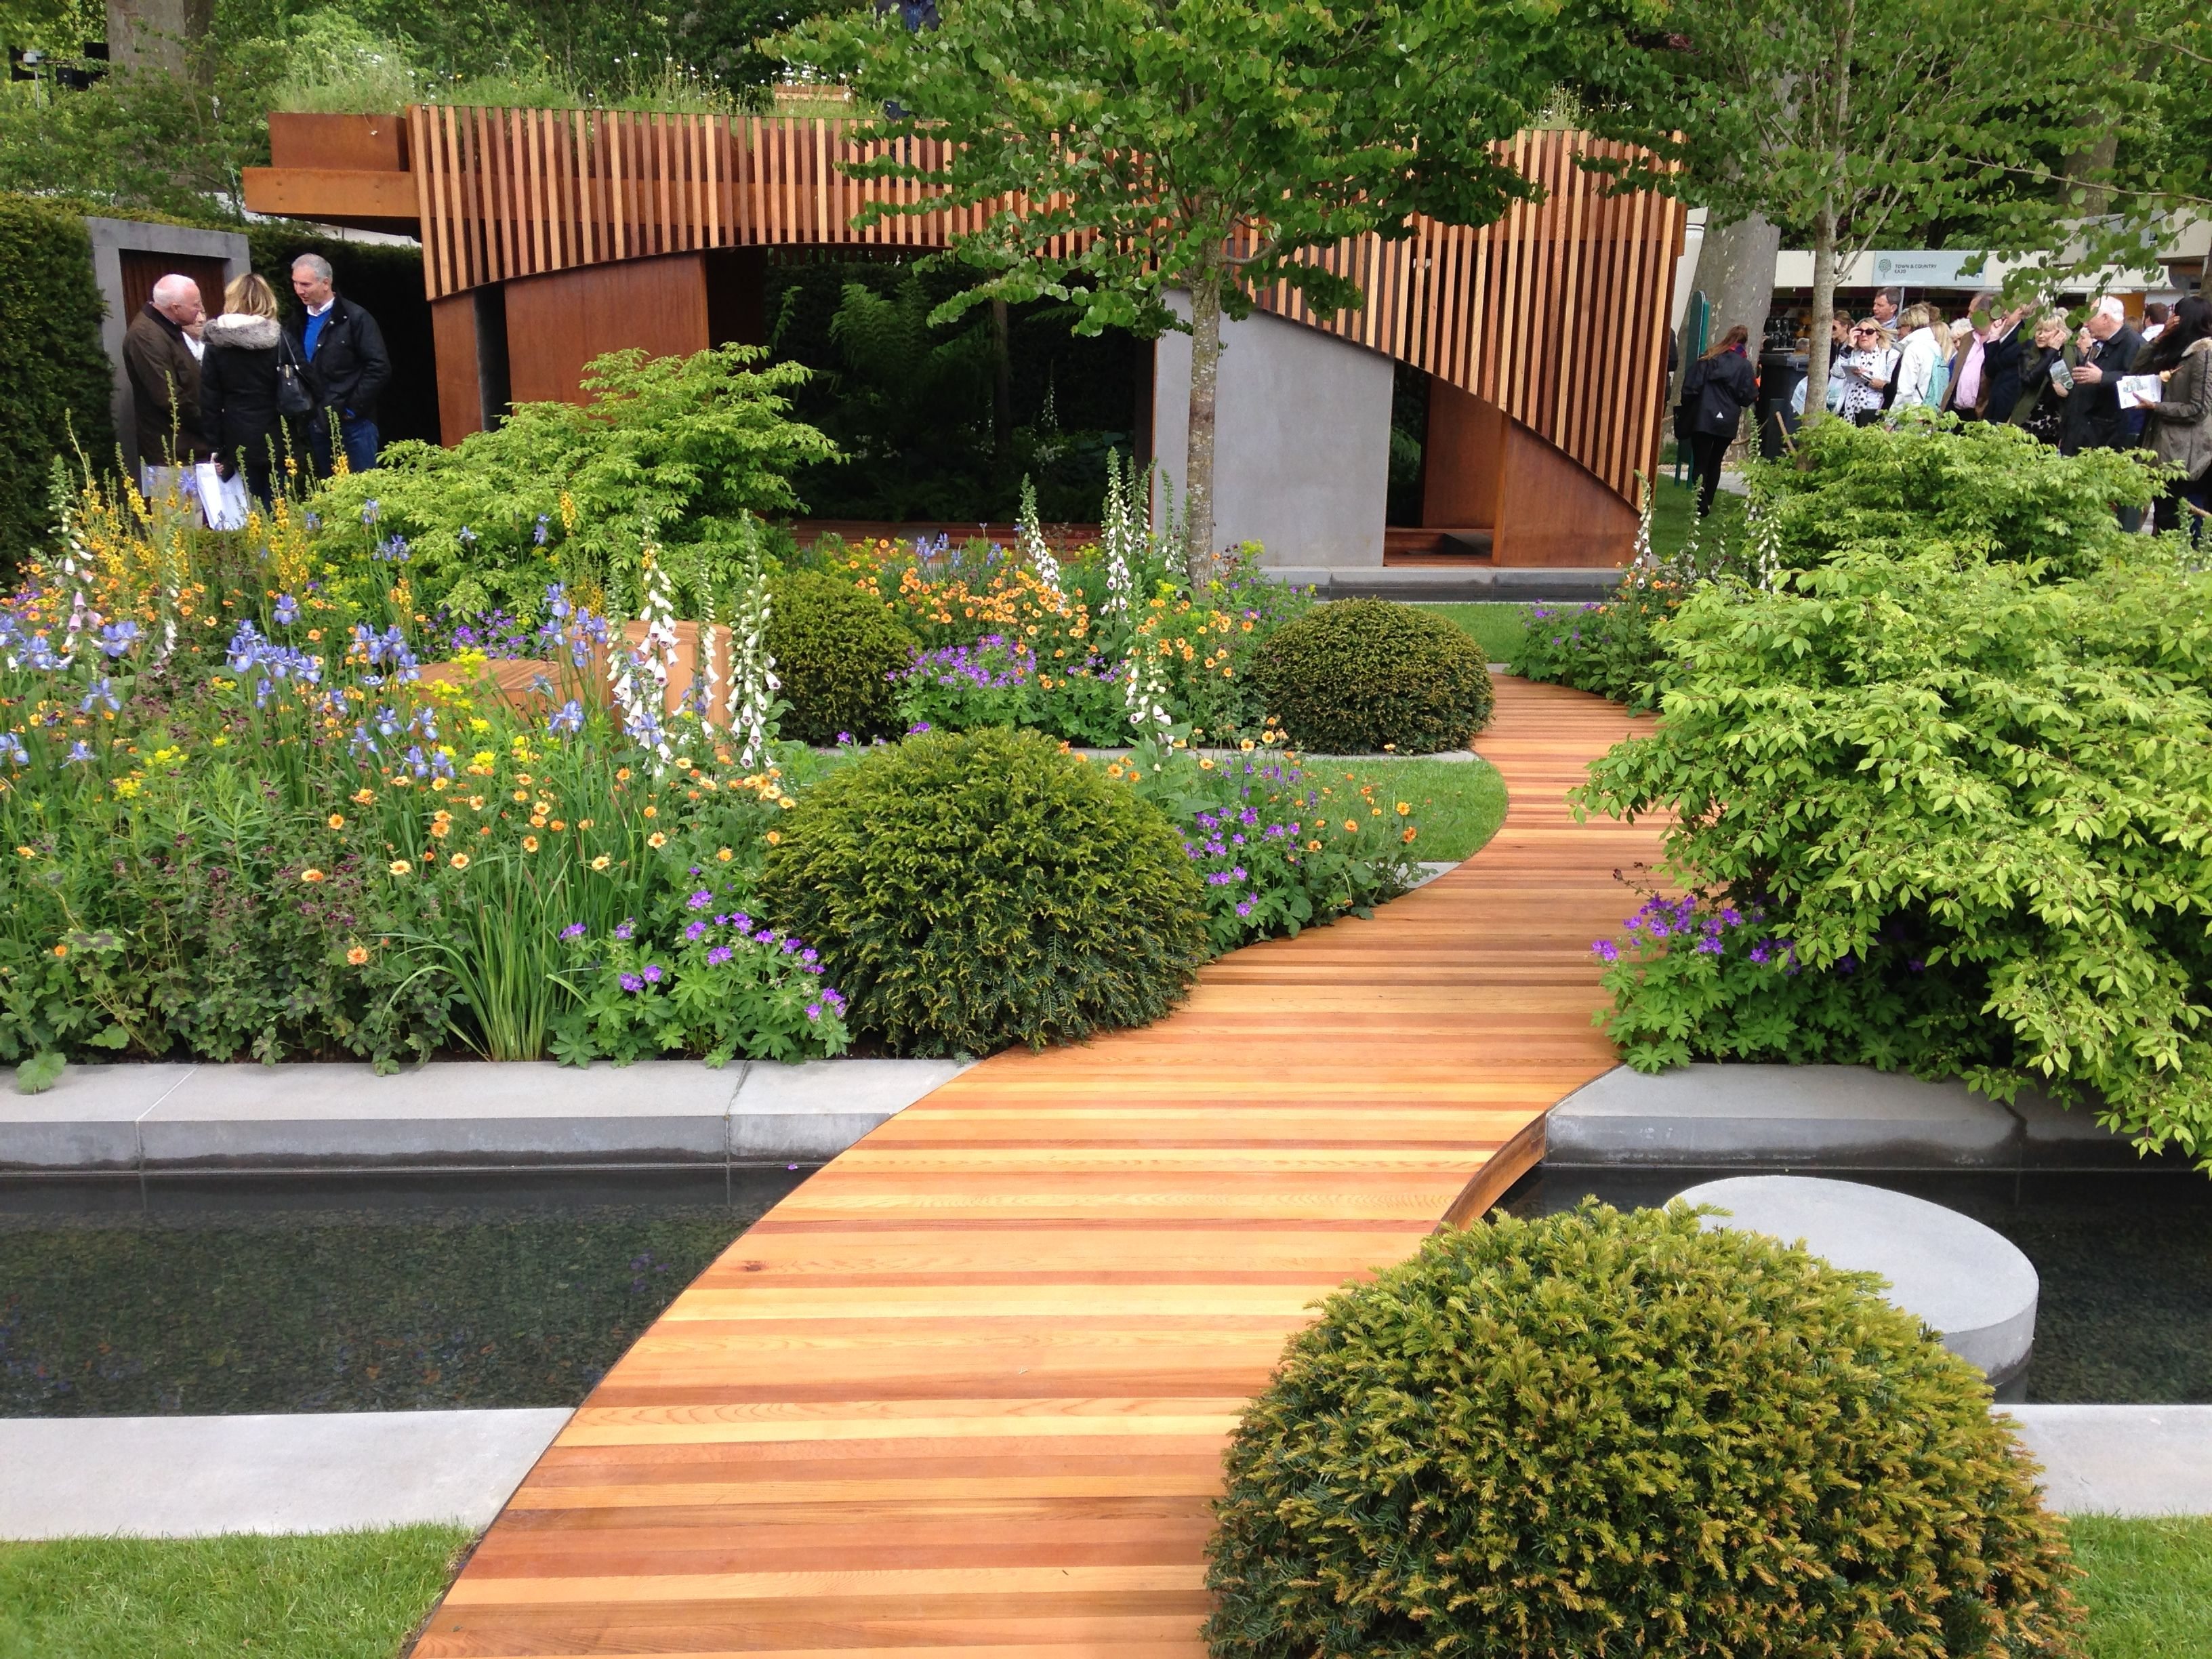 Homebase urban retreat garden gold medal winner at chelsea flower show 2015 chelsea flower - Chelsea flower show gold medal winners ...